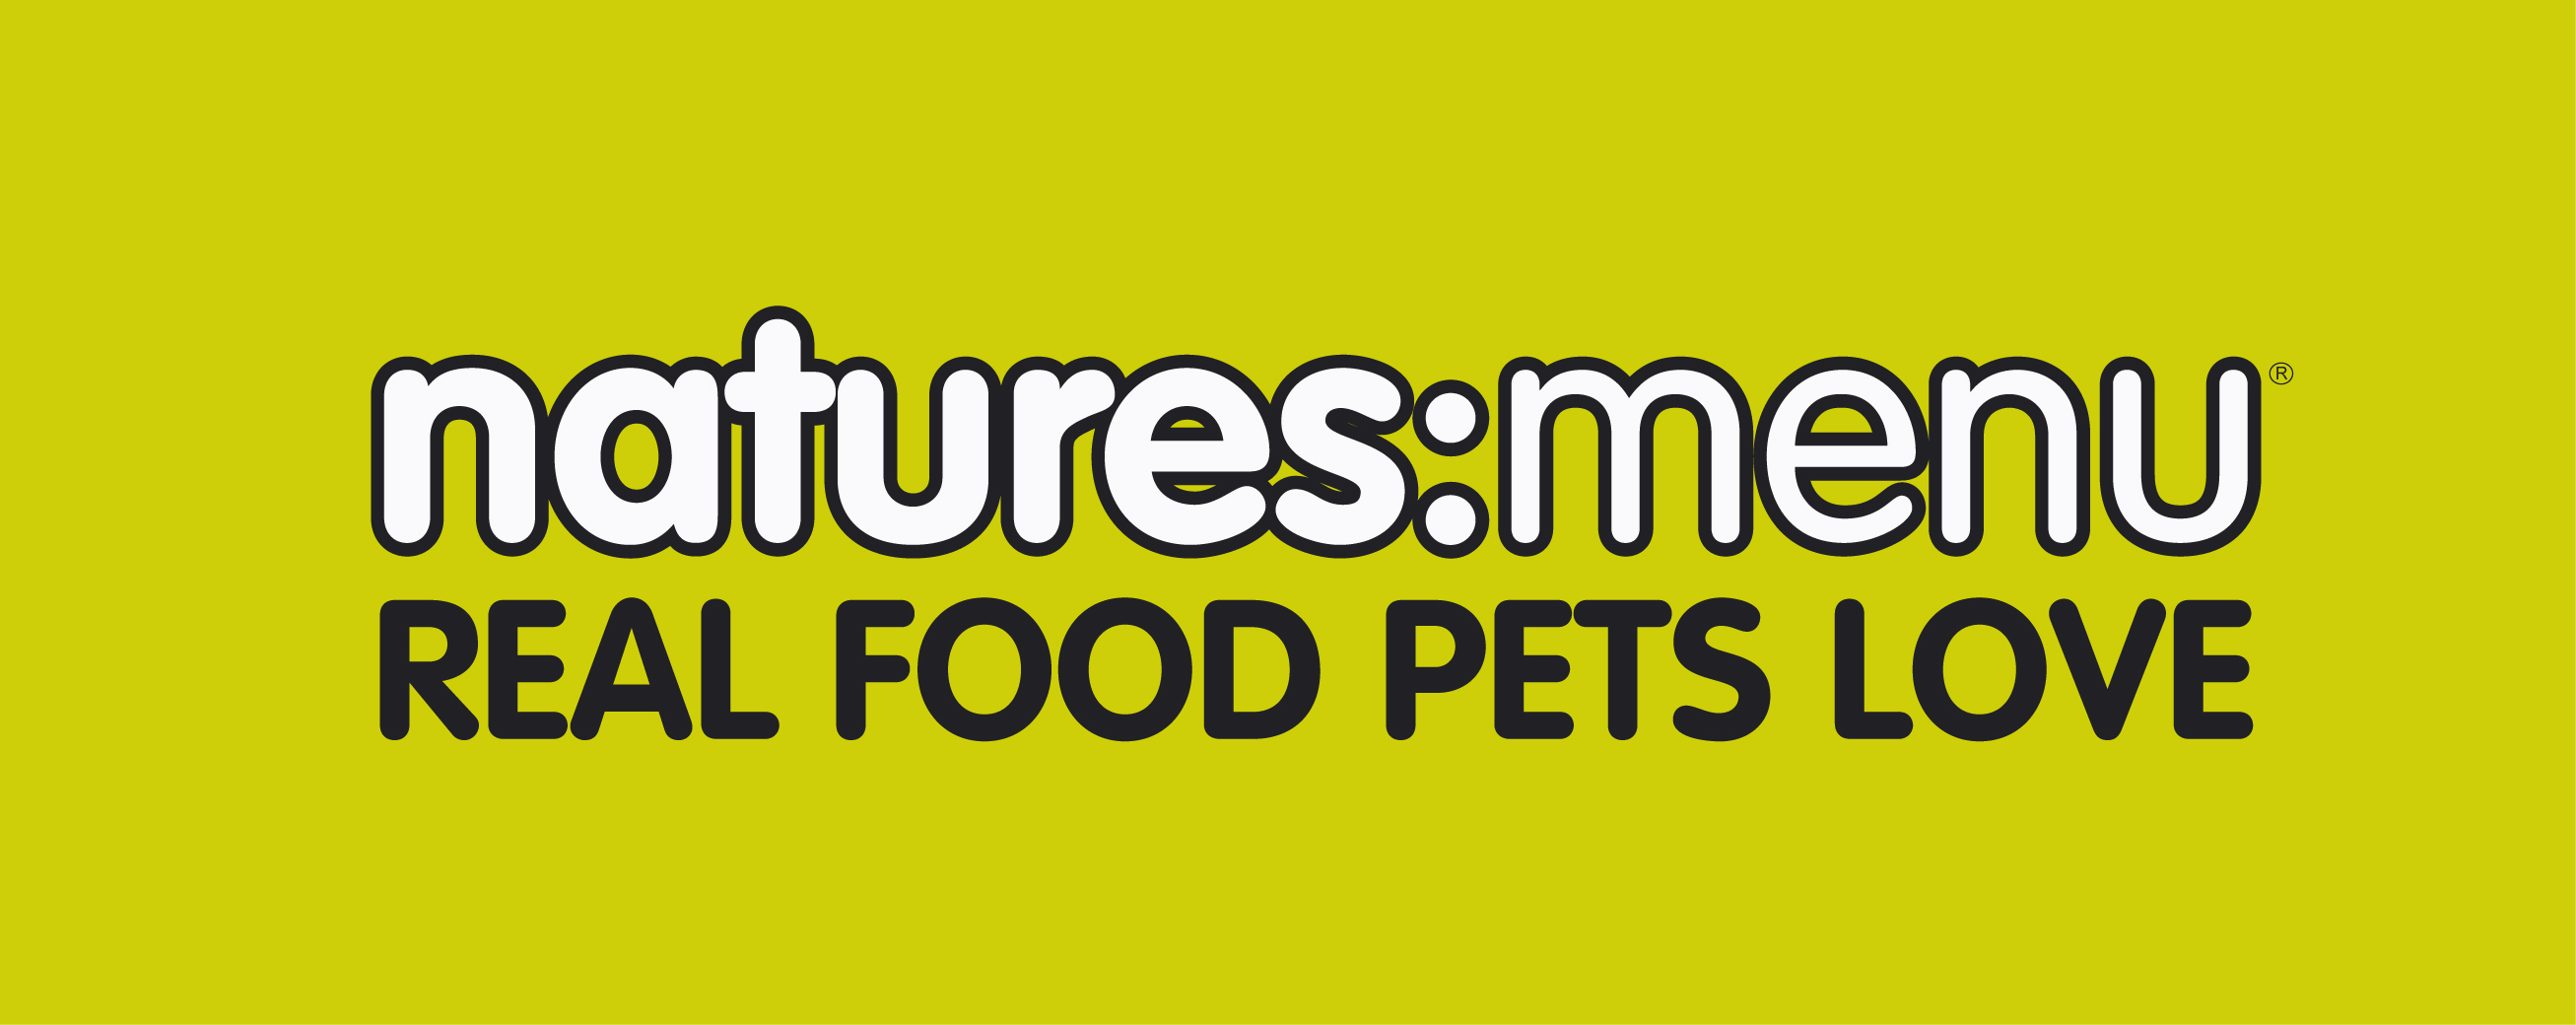 /images/embedded/1344005318_8958nm_logo-real-food-pets-love.jpg